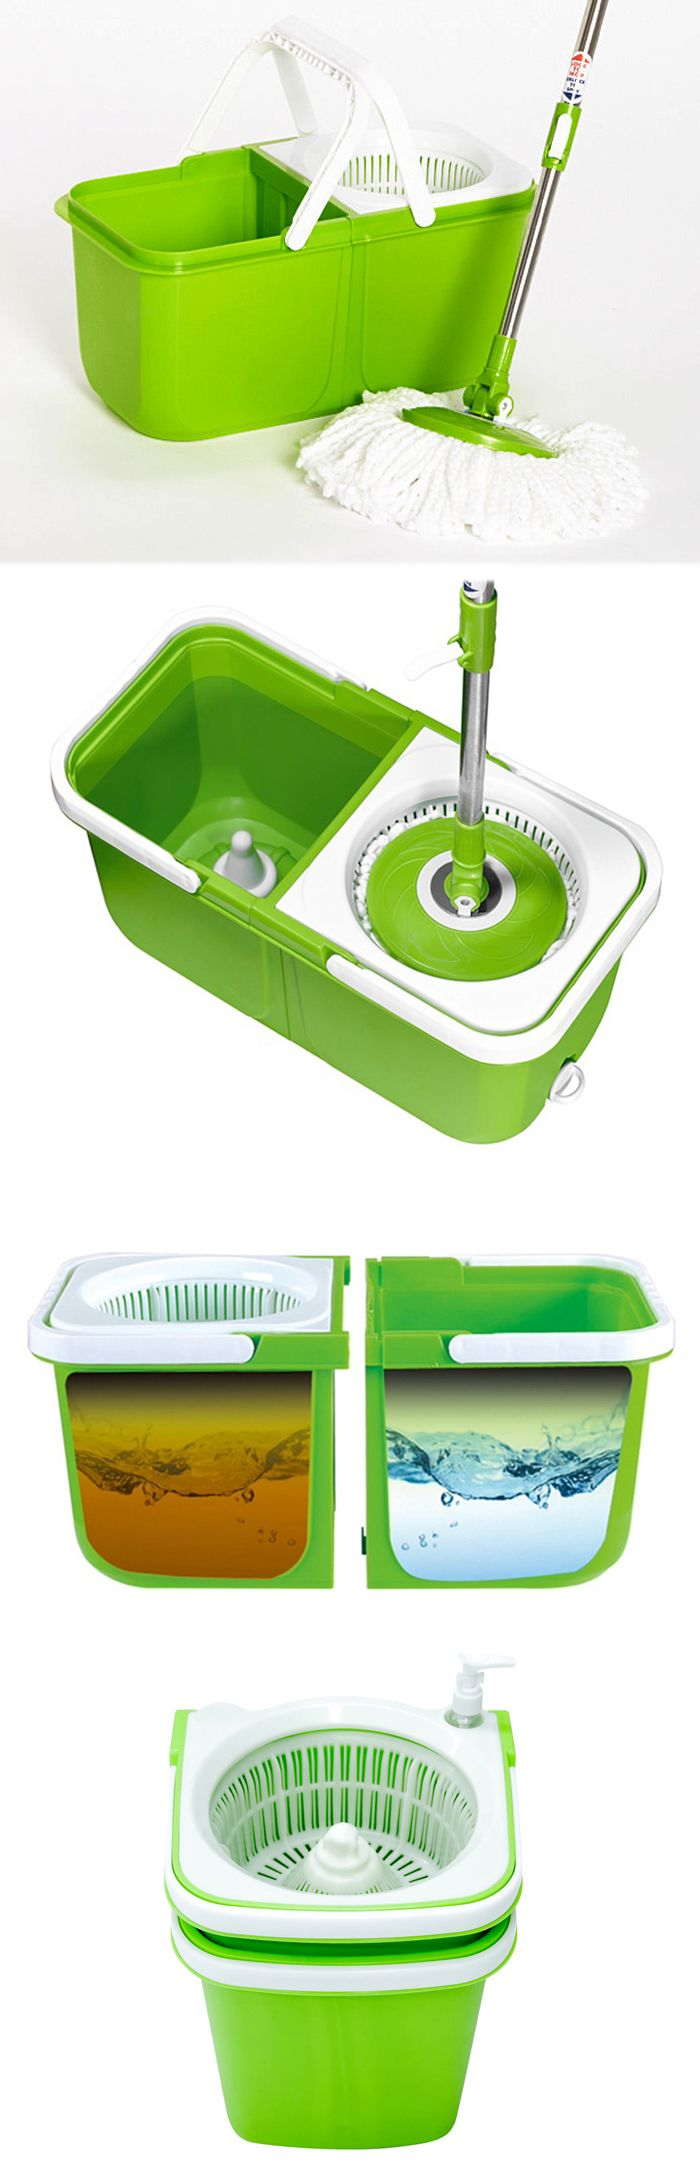 Instamop Set - Keeps dirty and clean sides separate. Stackable for easy storage.